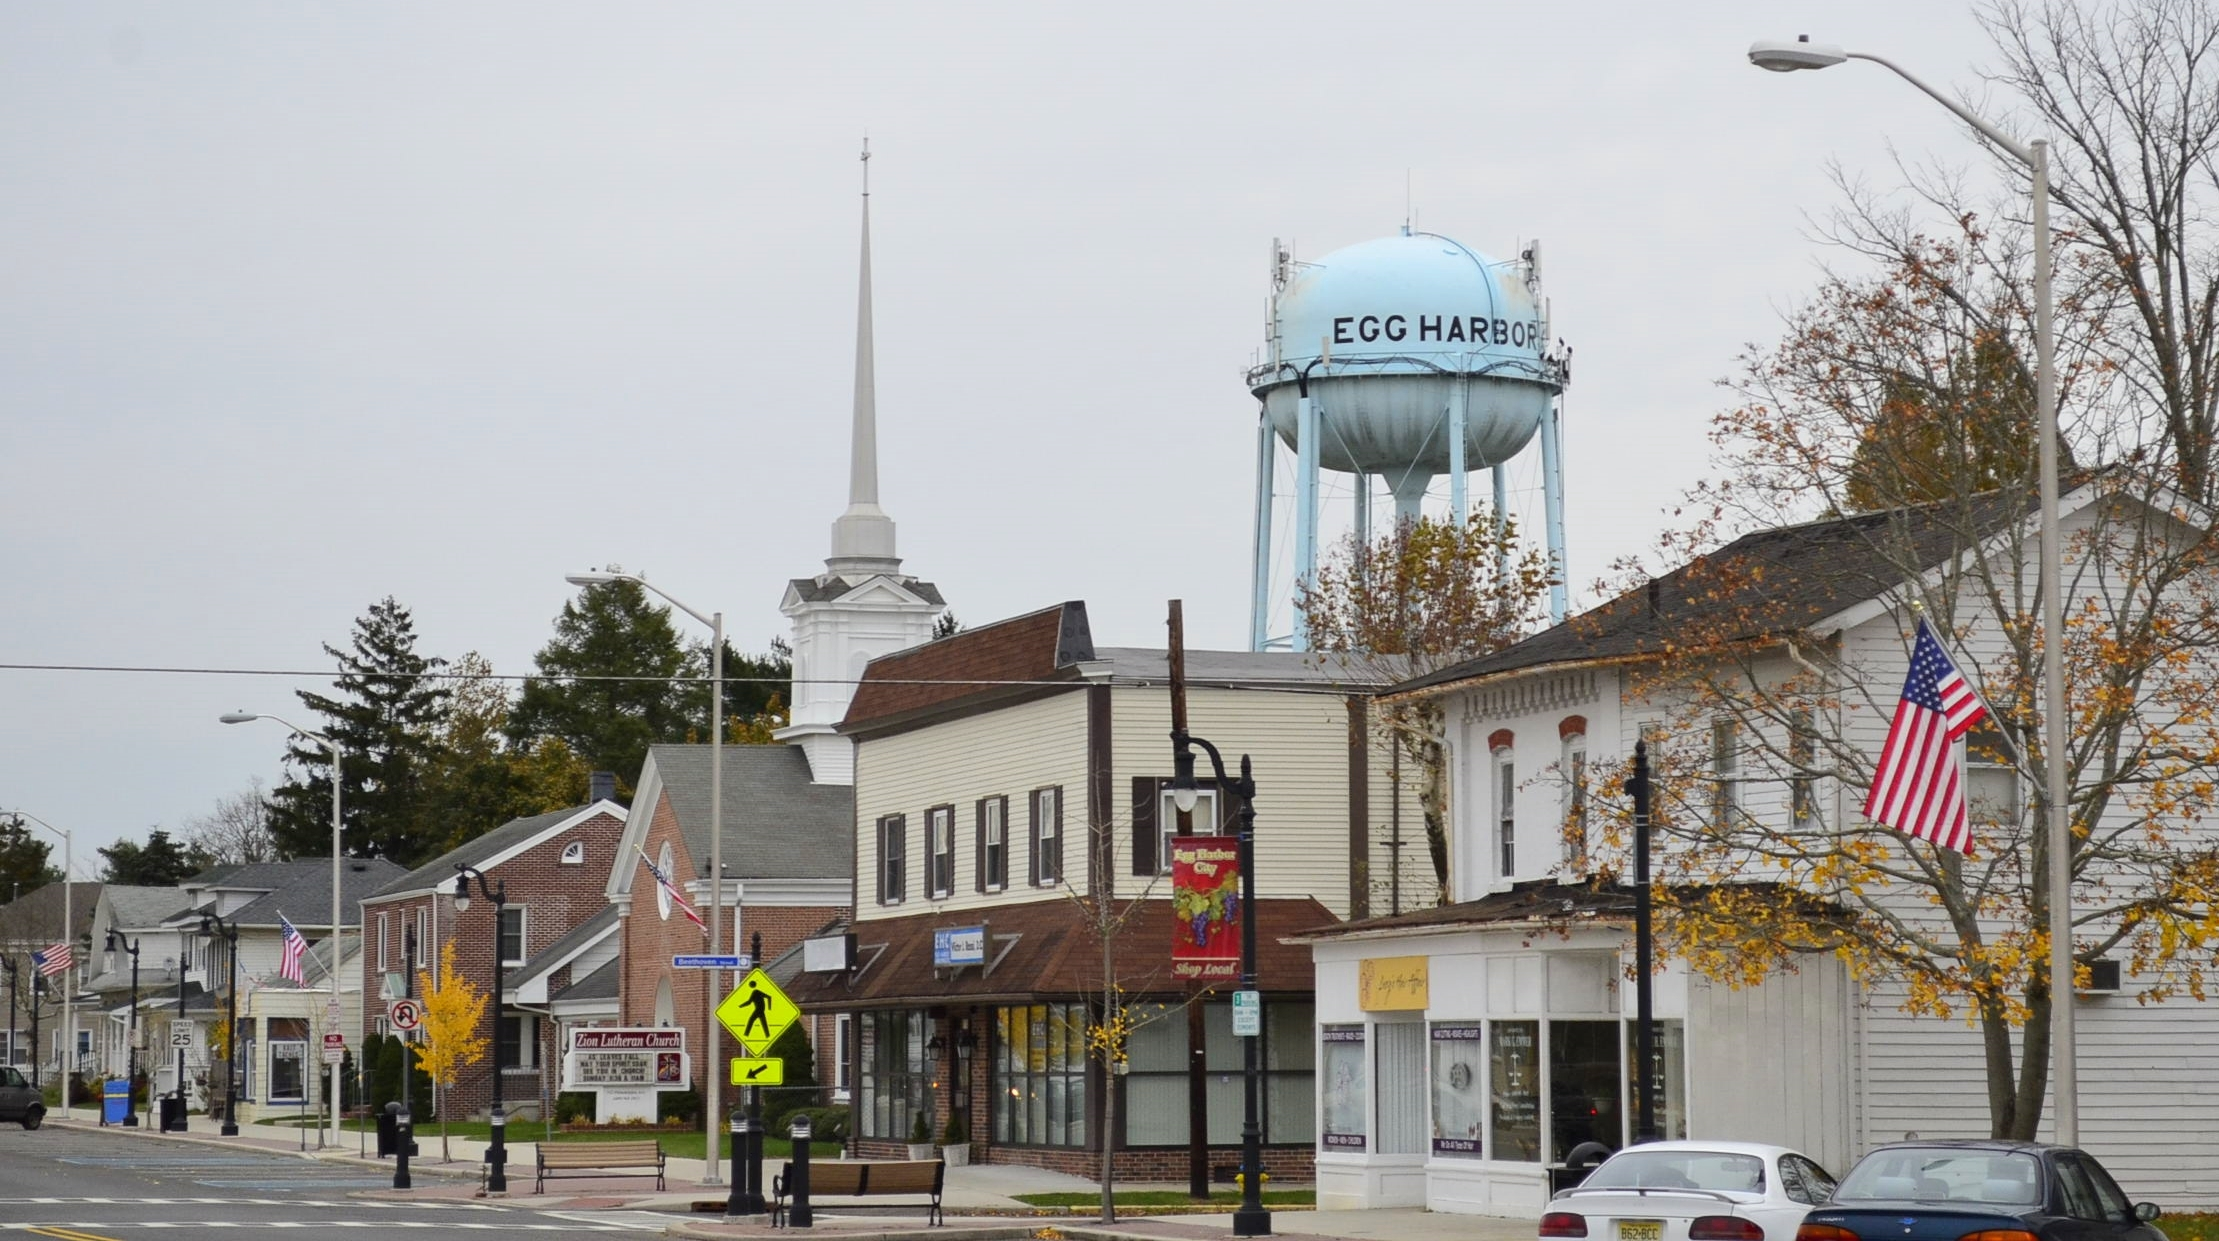 Downtown Egg Harbor City